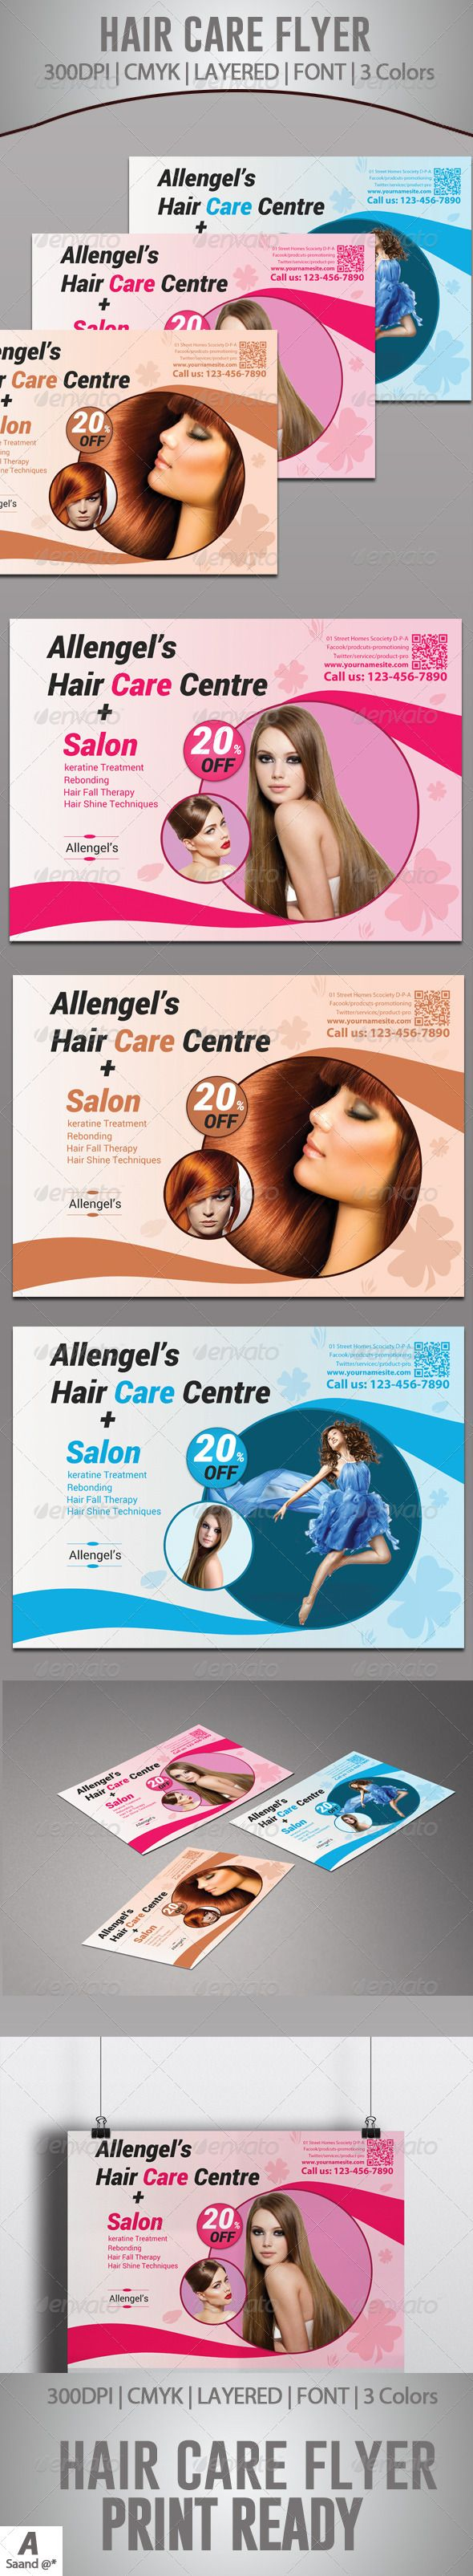 Hair Care Centre Flyer #GraphicRiver Hair Care Centre Flyer Template Fully layered PSD 300 Dpi, CMYK Main file is Completely and fully editable file, print ready Text/Font or Color can be altered as needed Photos are not included in the file Font File: Fonts: .fontsquirrel /fonts/roboto Created: 6 December 13 Graphics Files Included: Photoshop PSD Layered: Yes Minimum Adobe CS Version: CS5 ...